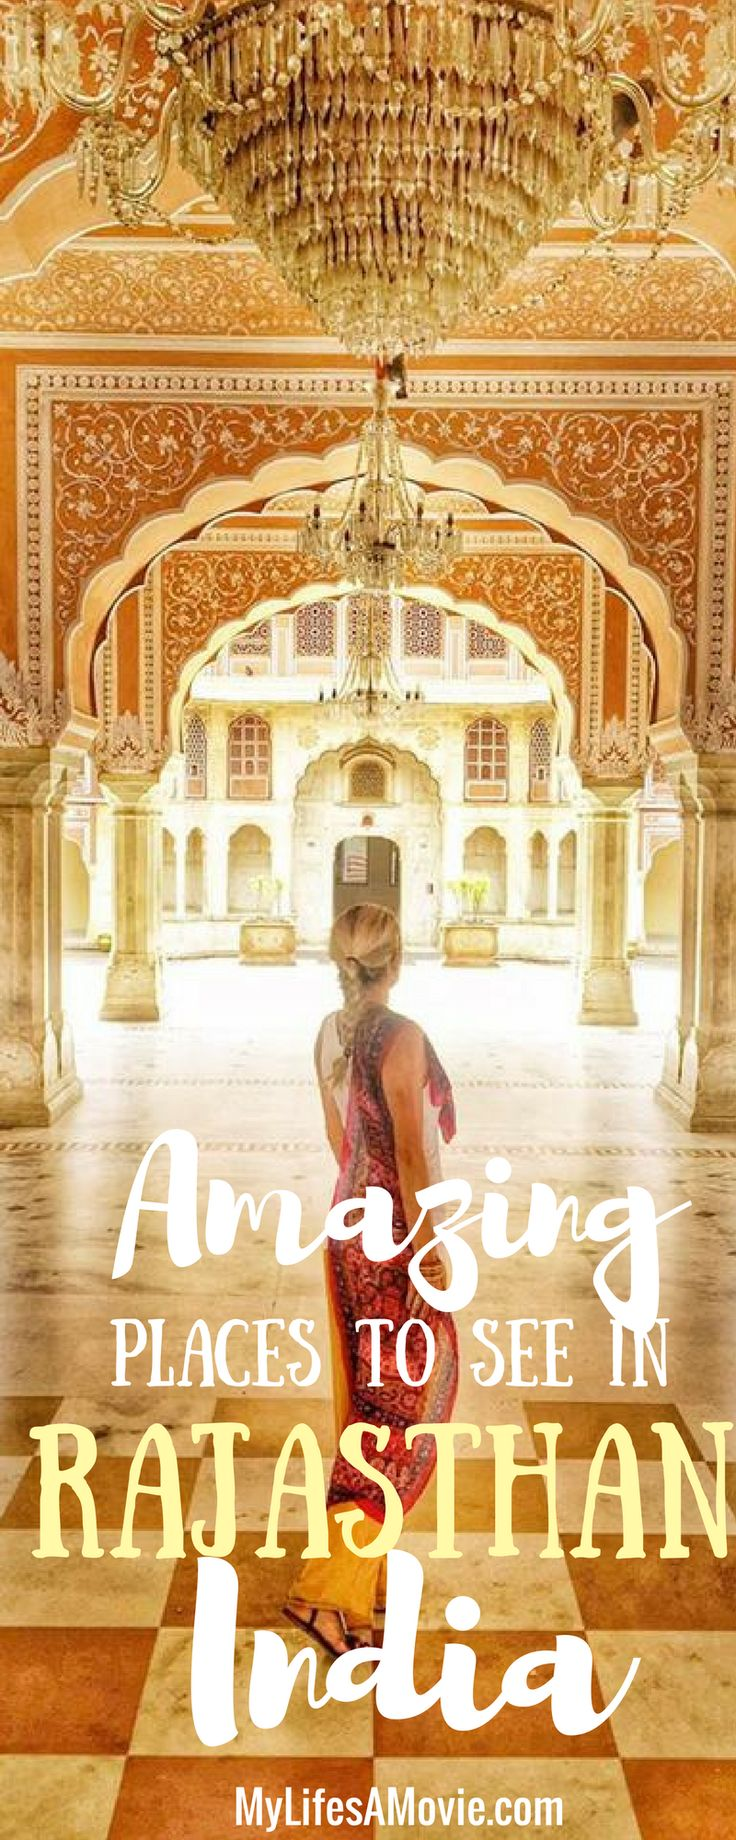 Rajasthan is one of the most beautiful areas of India! Check it out!